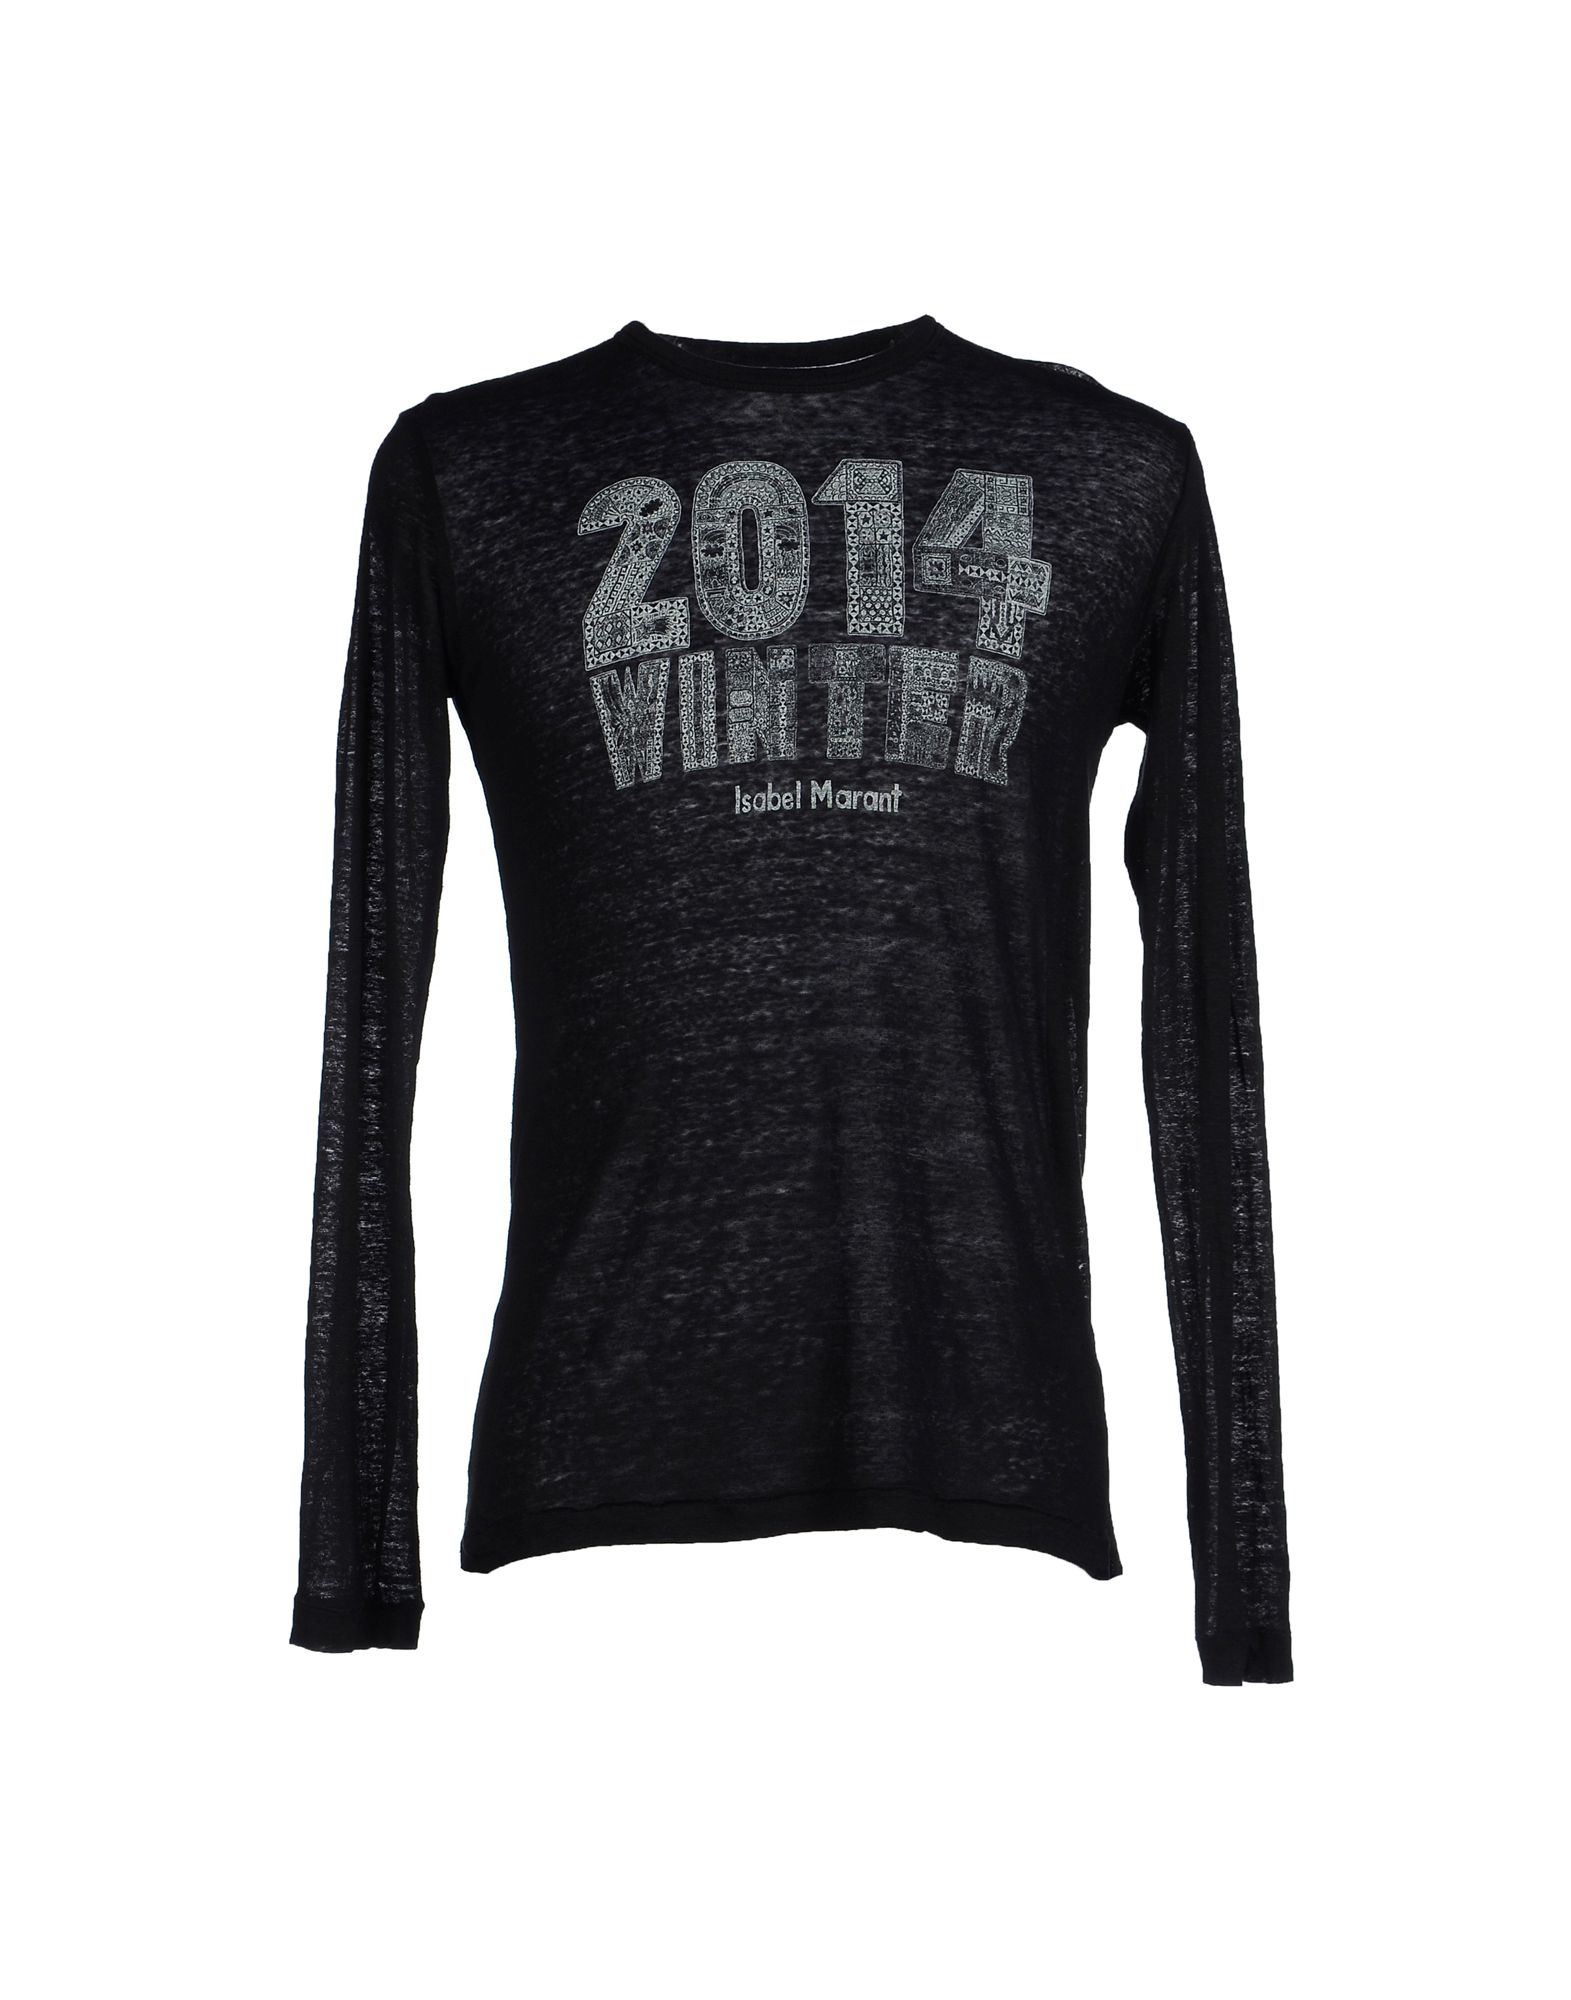 Toile isabel marant t shirt in black lyst for Isabel marant t shirt sale